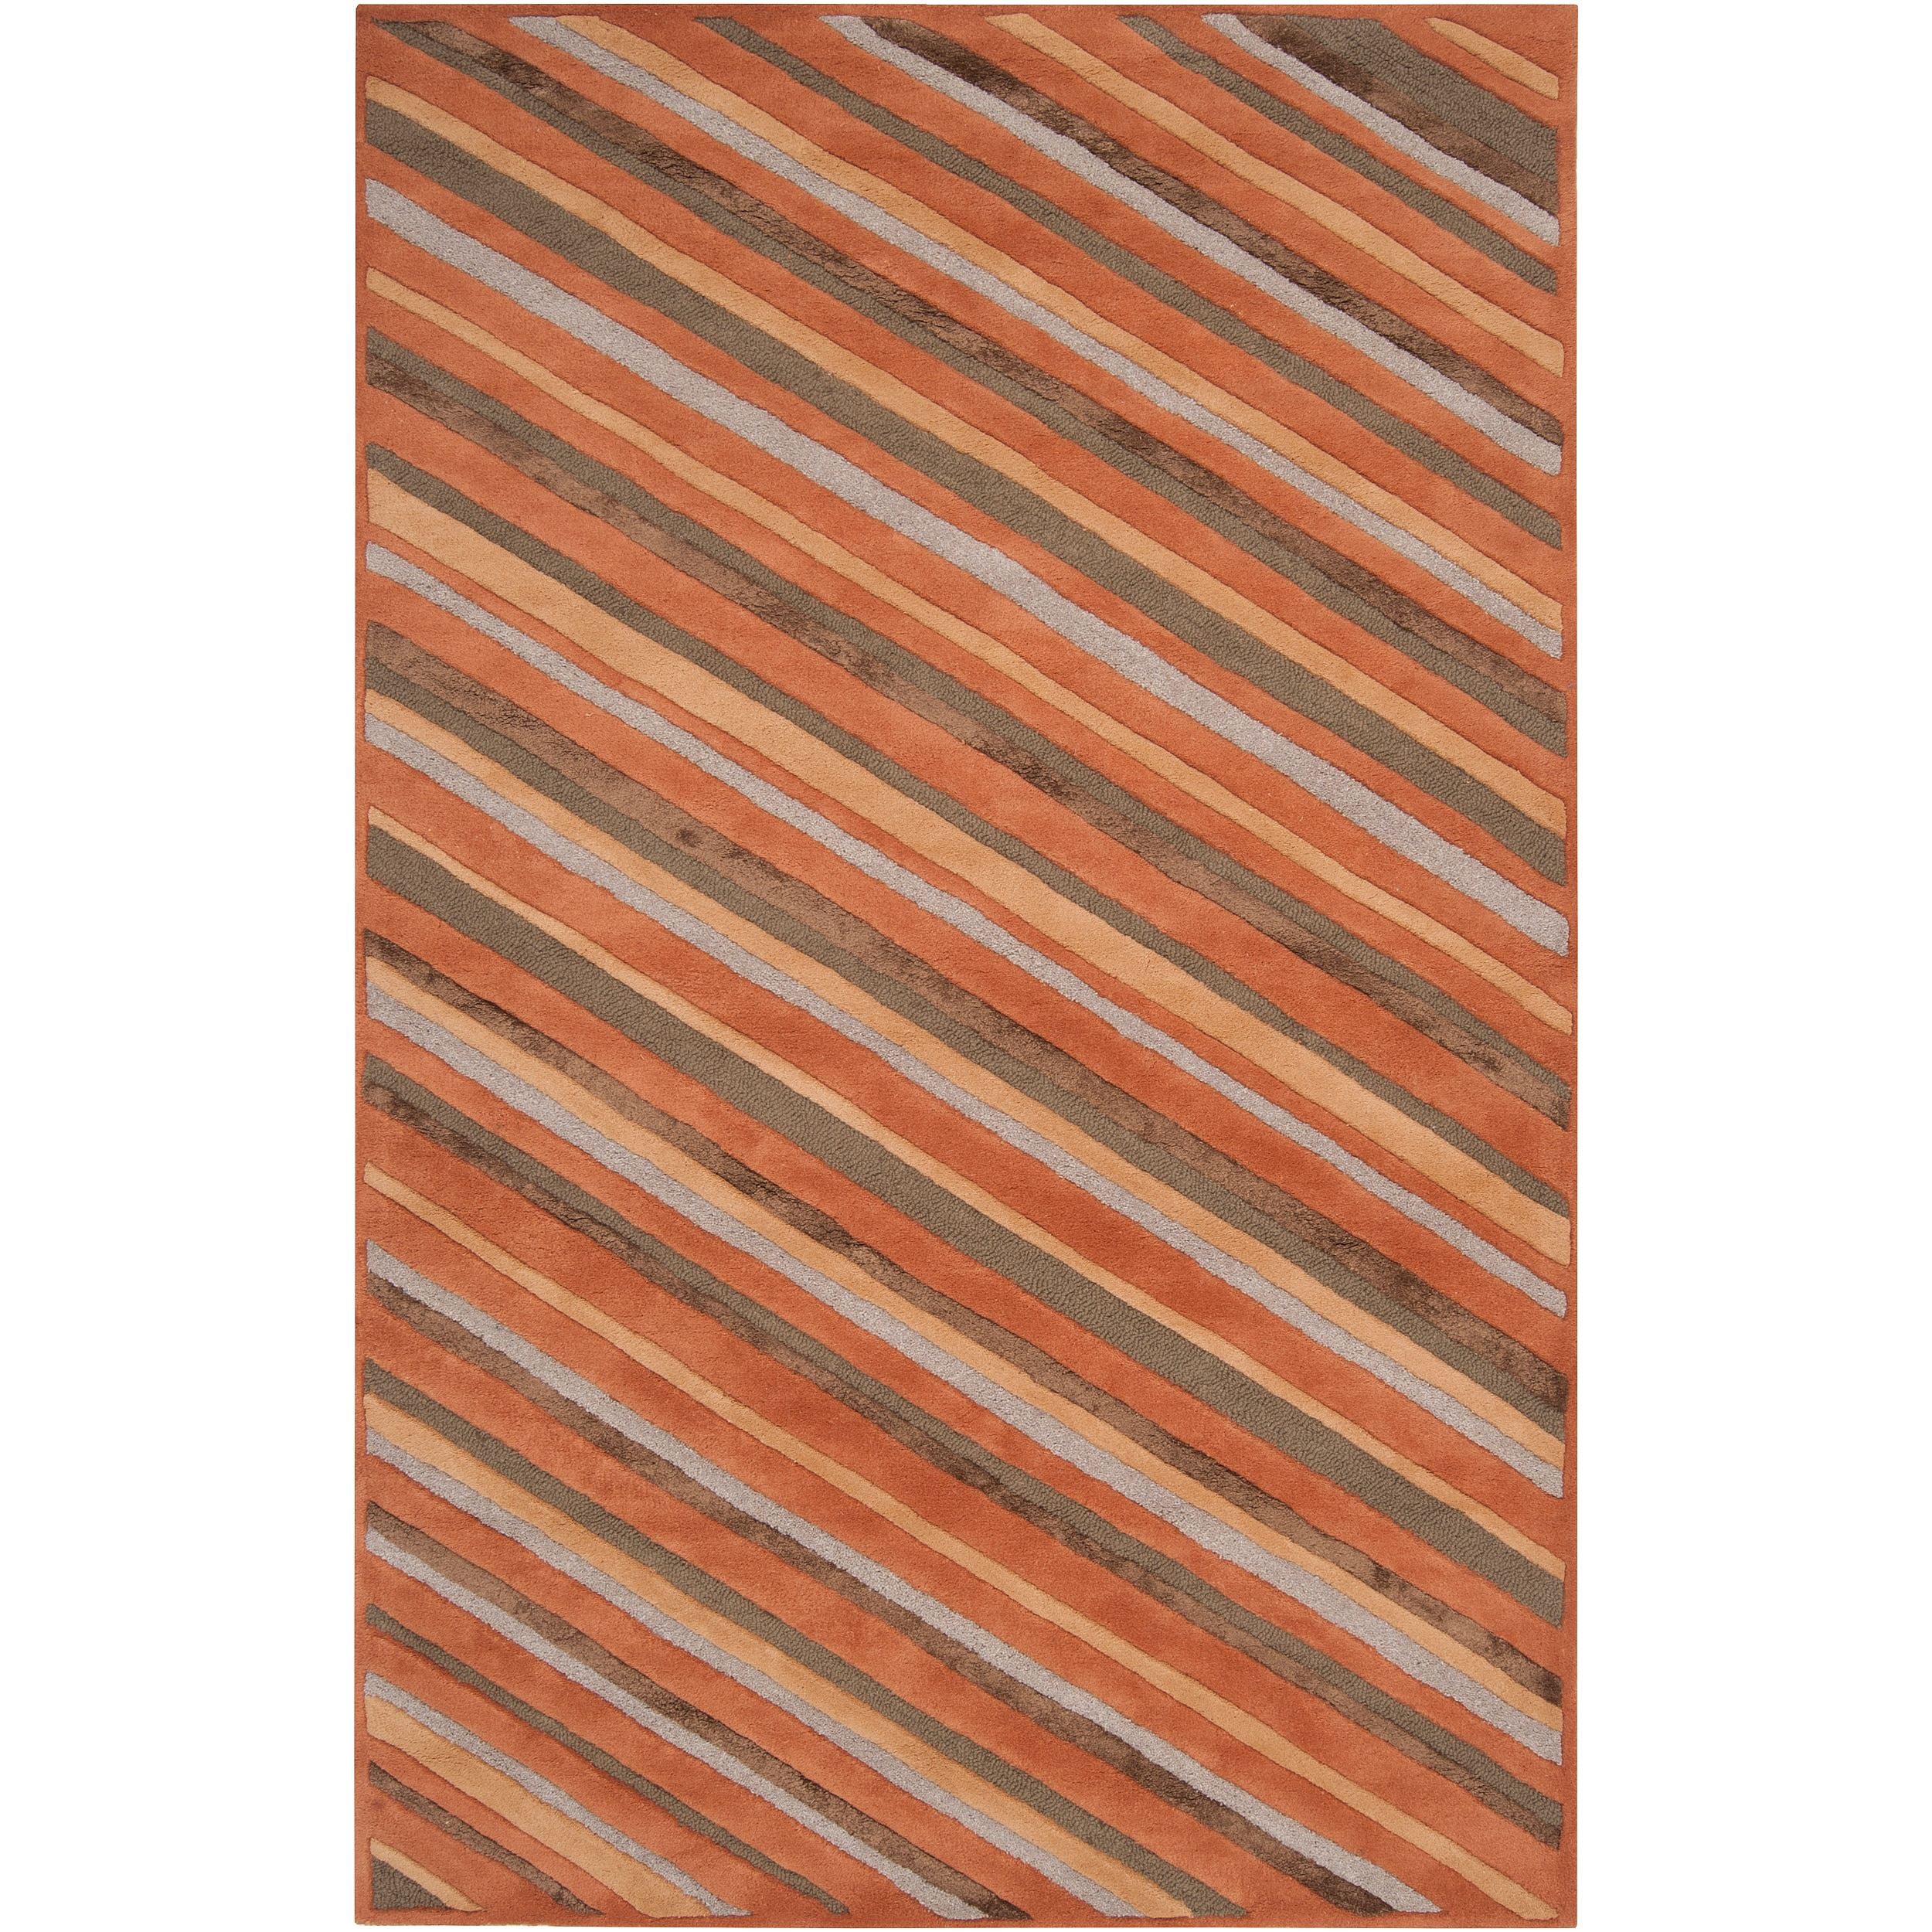 Candice Olson Hand-Tufted Brown Cane Diagonal Stripes Wool Area Rug (8' x 11')